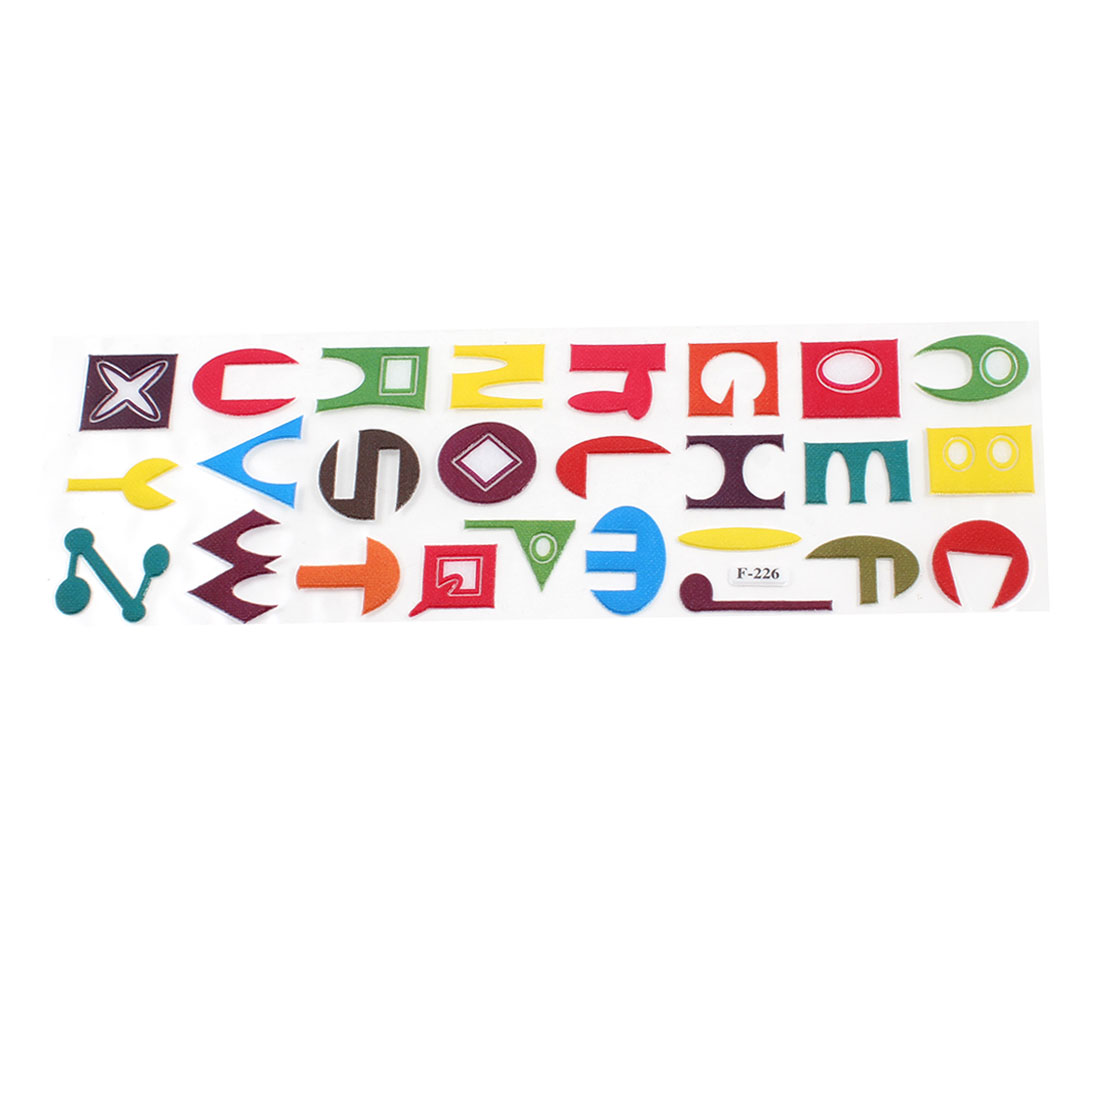 26 in 1 3D Colorful English Letters Stick PVC Sticker for Wall